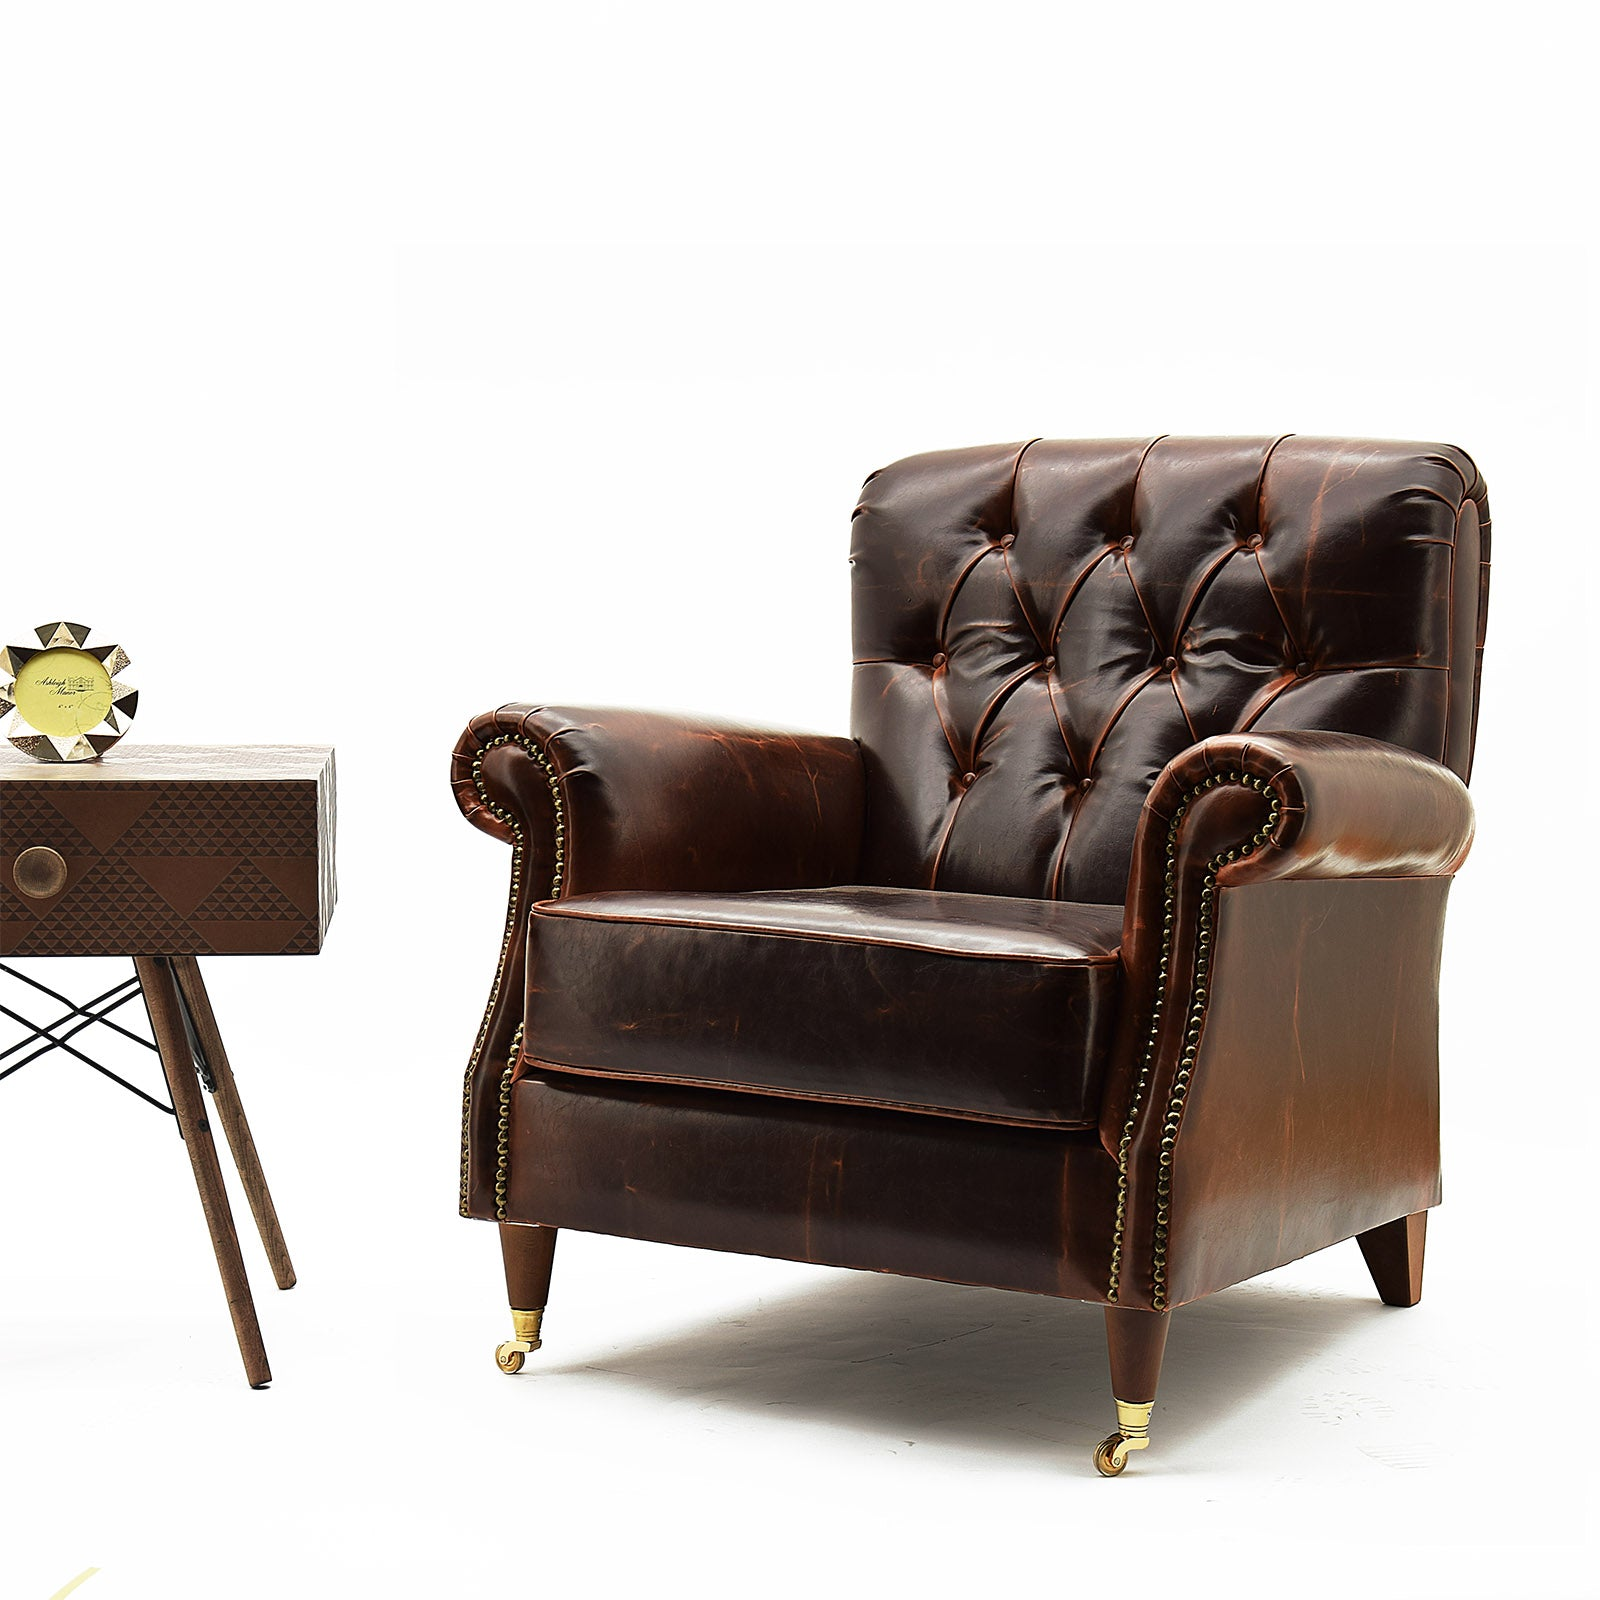 Corleone armchair  LOUNGE BERGERE